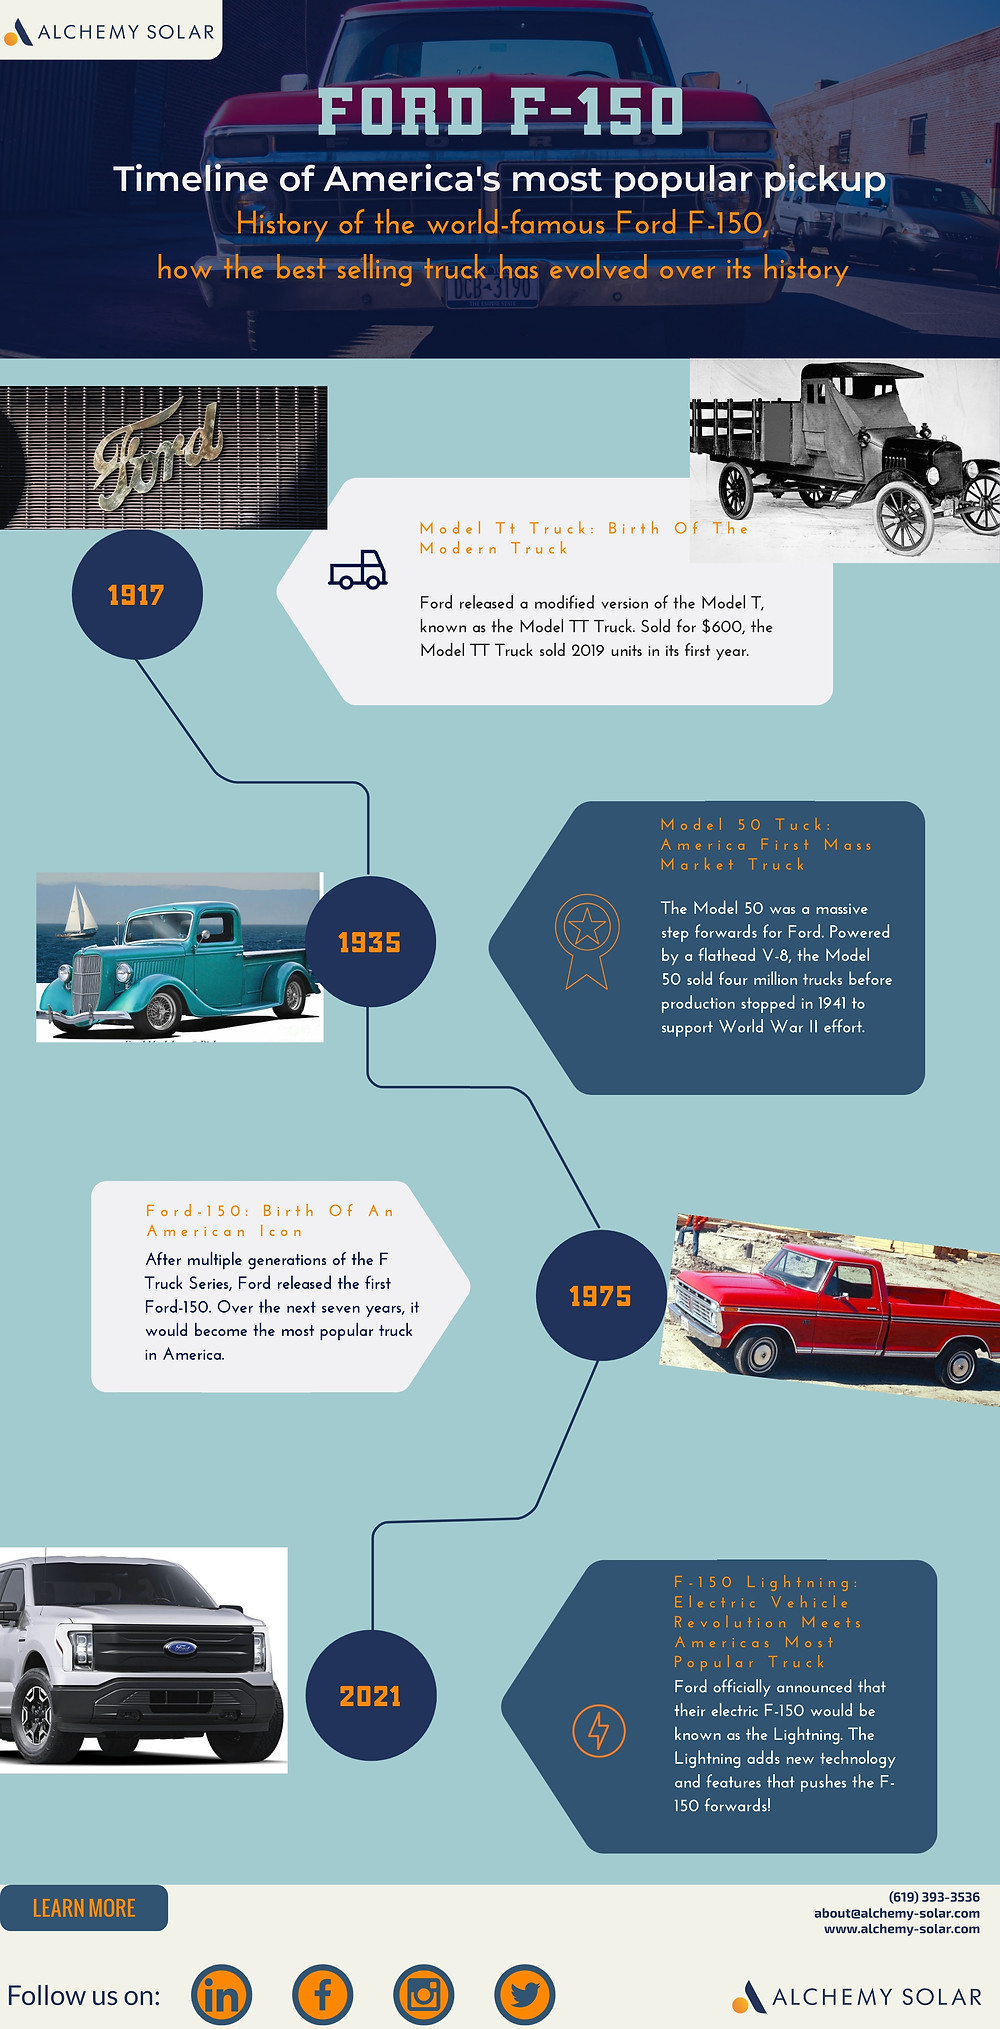 Learn about the history and timeline of the Ford F-150 from the Model TT Truck to the all-electric Ford F-150 Lightning